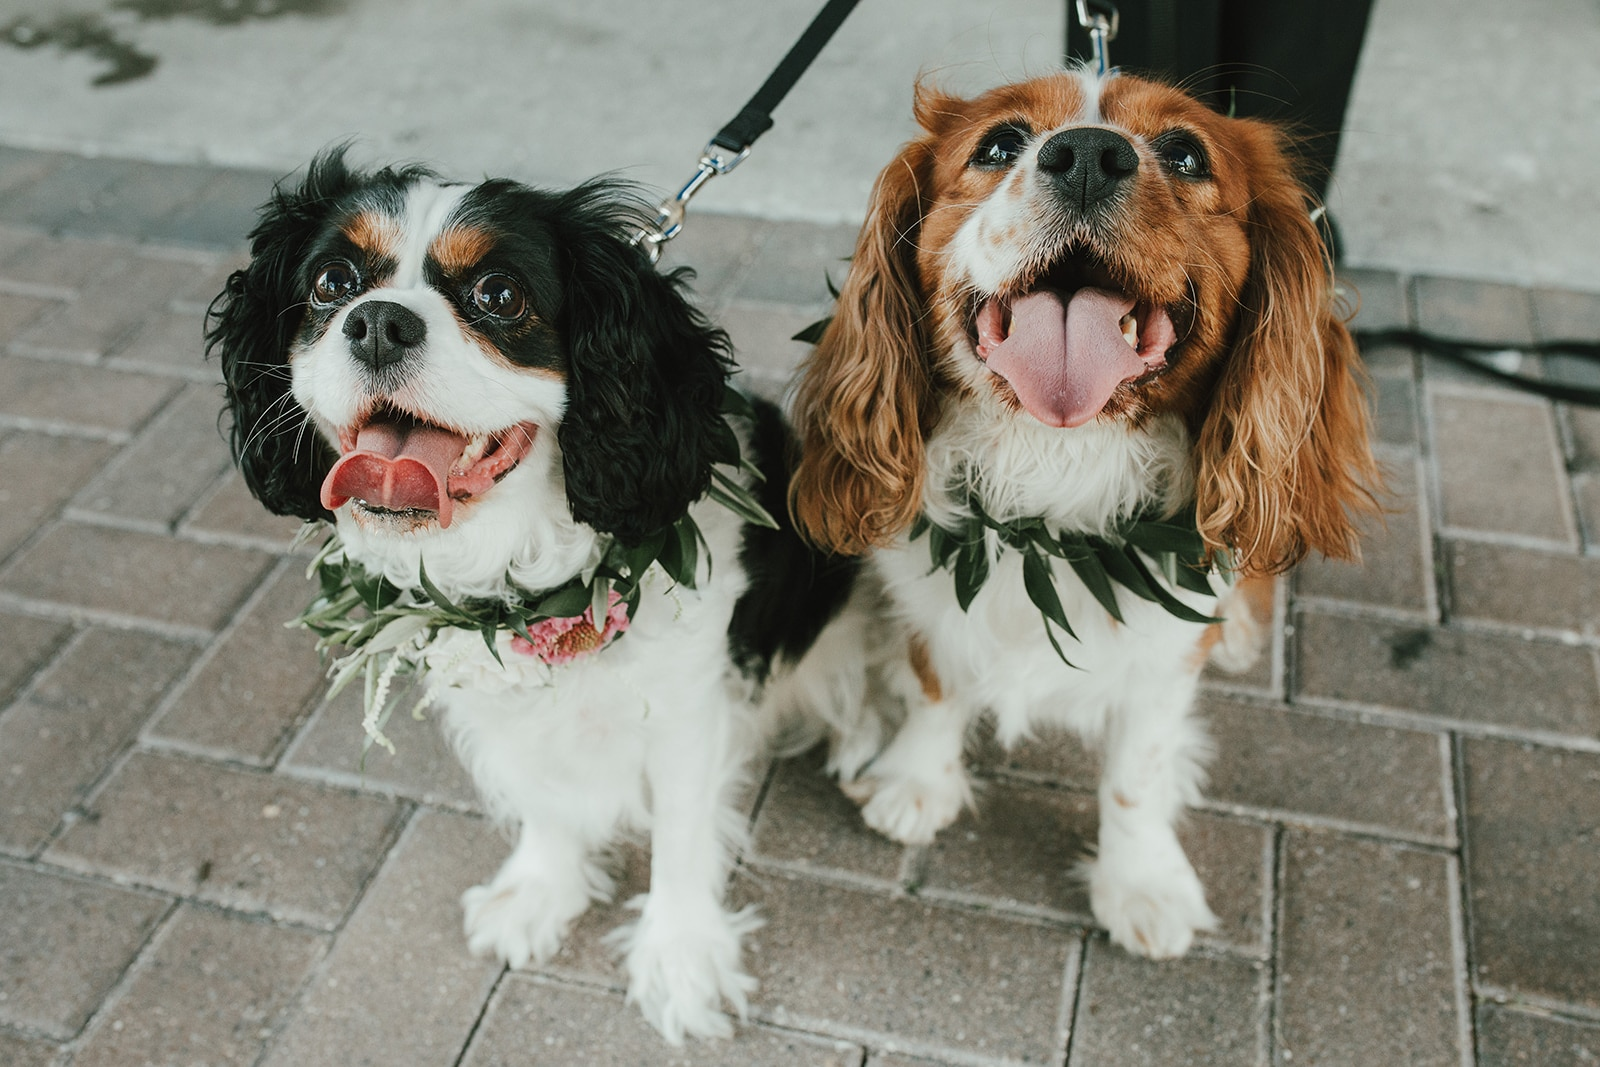 FairyTail Pet Care - dashing cocker spaniels with floral collars